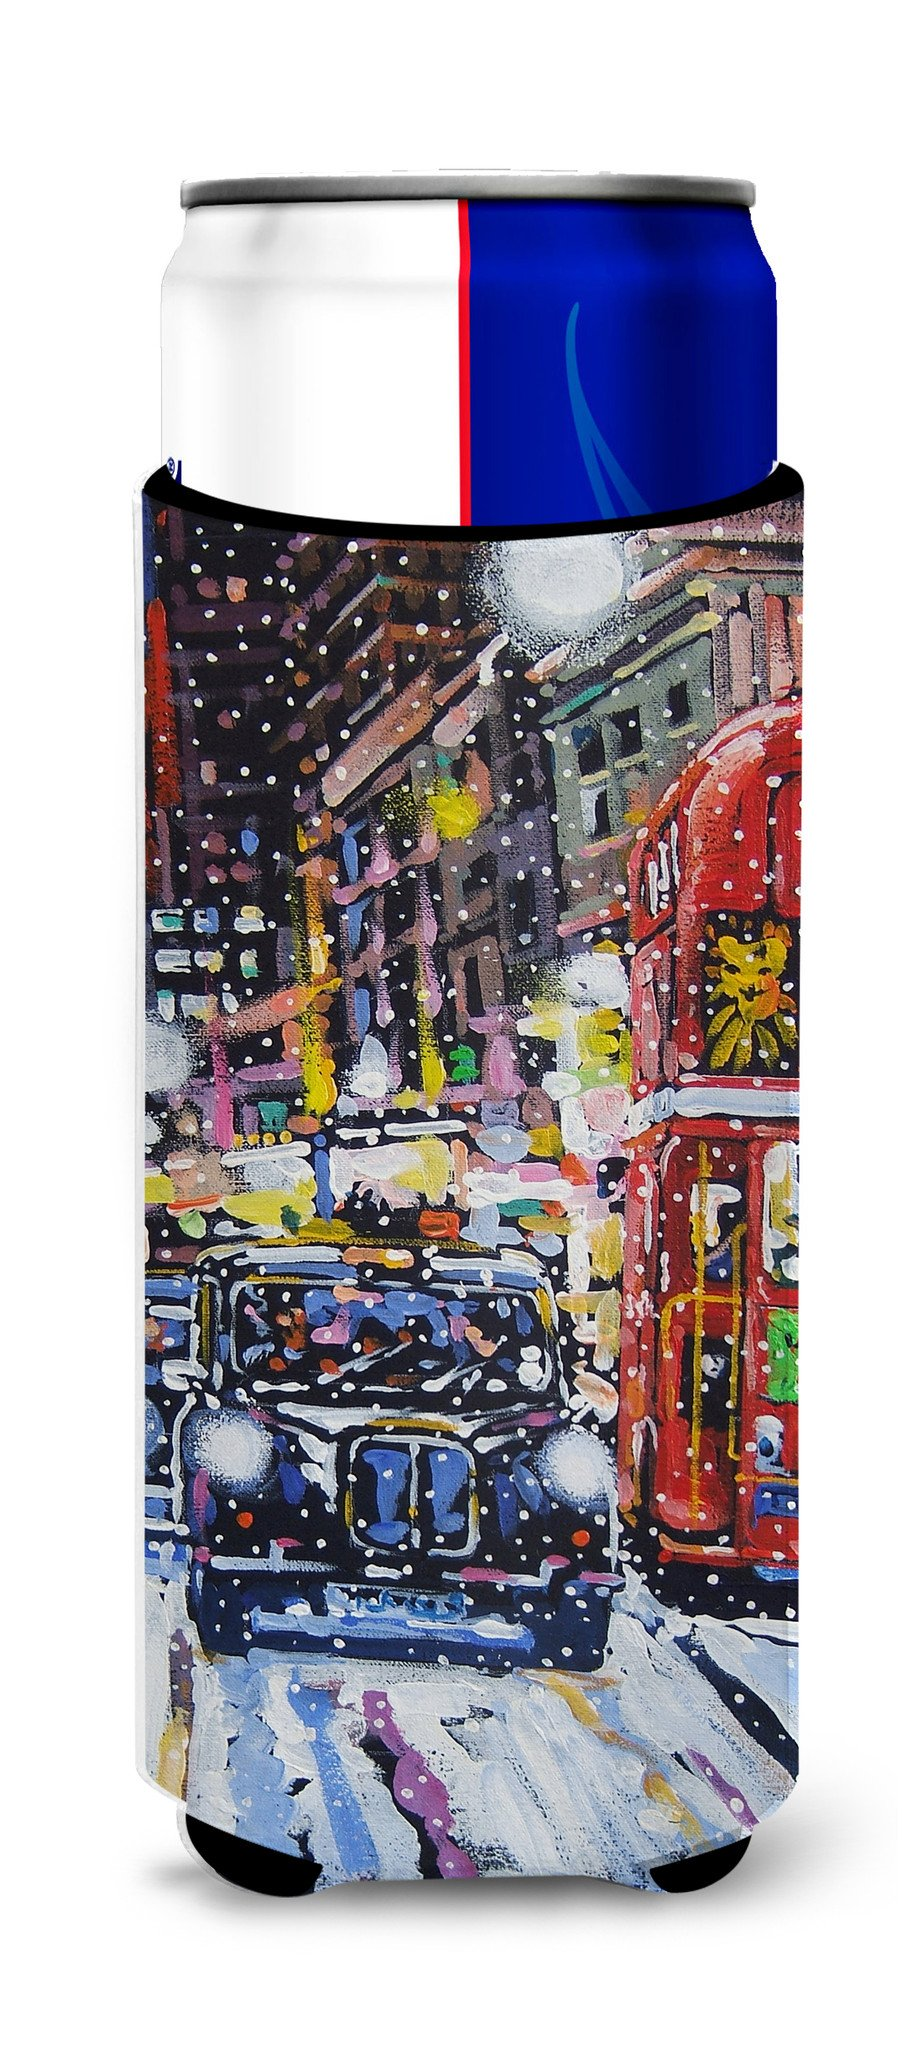 London Snow by Roy Avis Ultra Beverage Insulators for slim cans ARA0133MUK by Caroline's Treasures